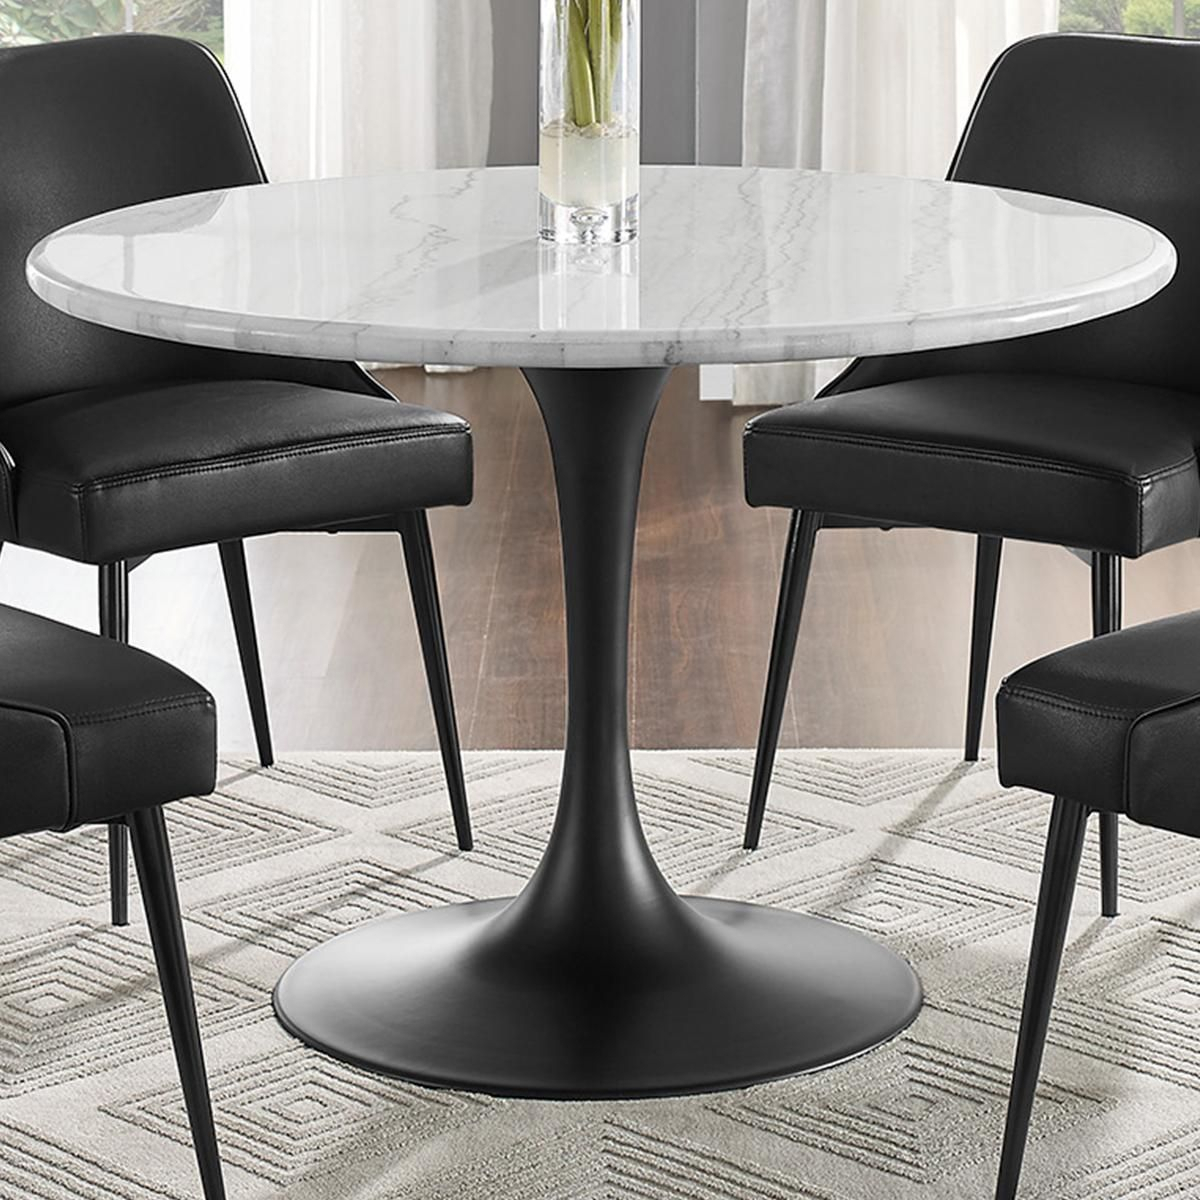 Crystal City Colfax Round Dining Table In Black And White With Regard To Newest Chapman Round Marble Dining Tables (View 22 of 25)